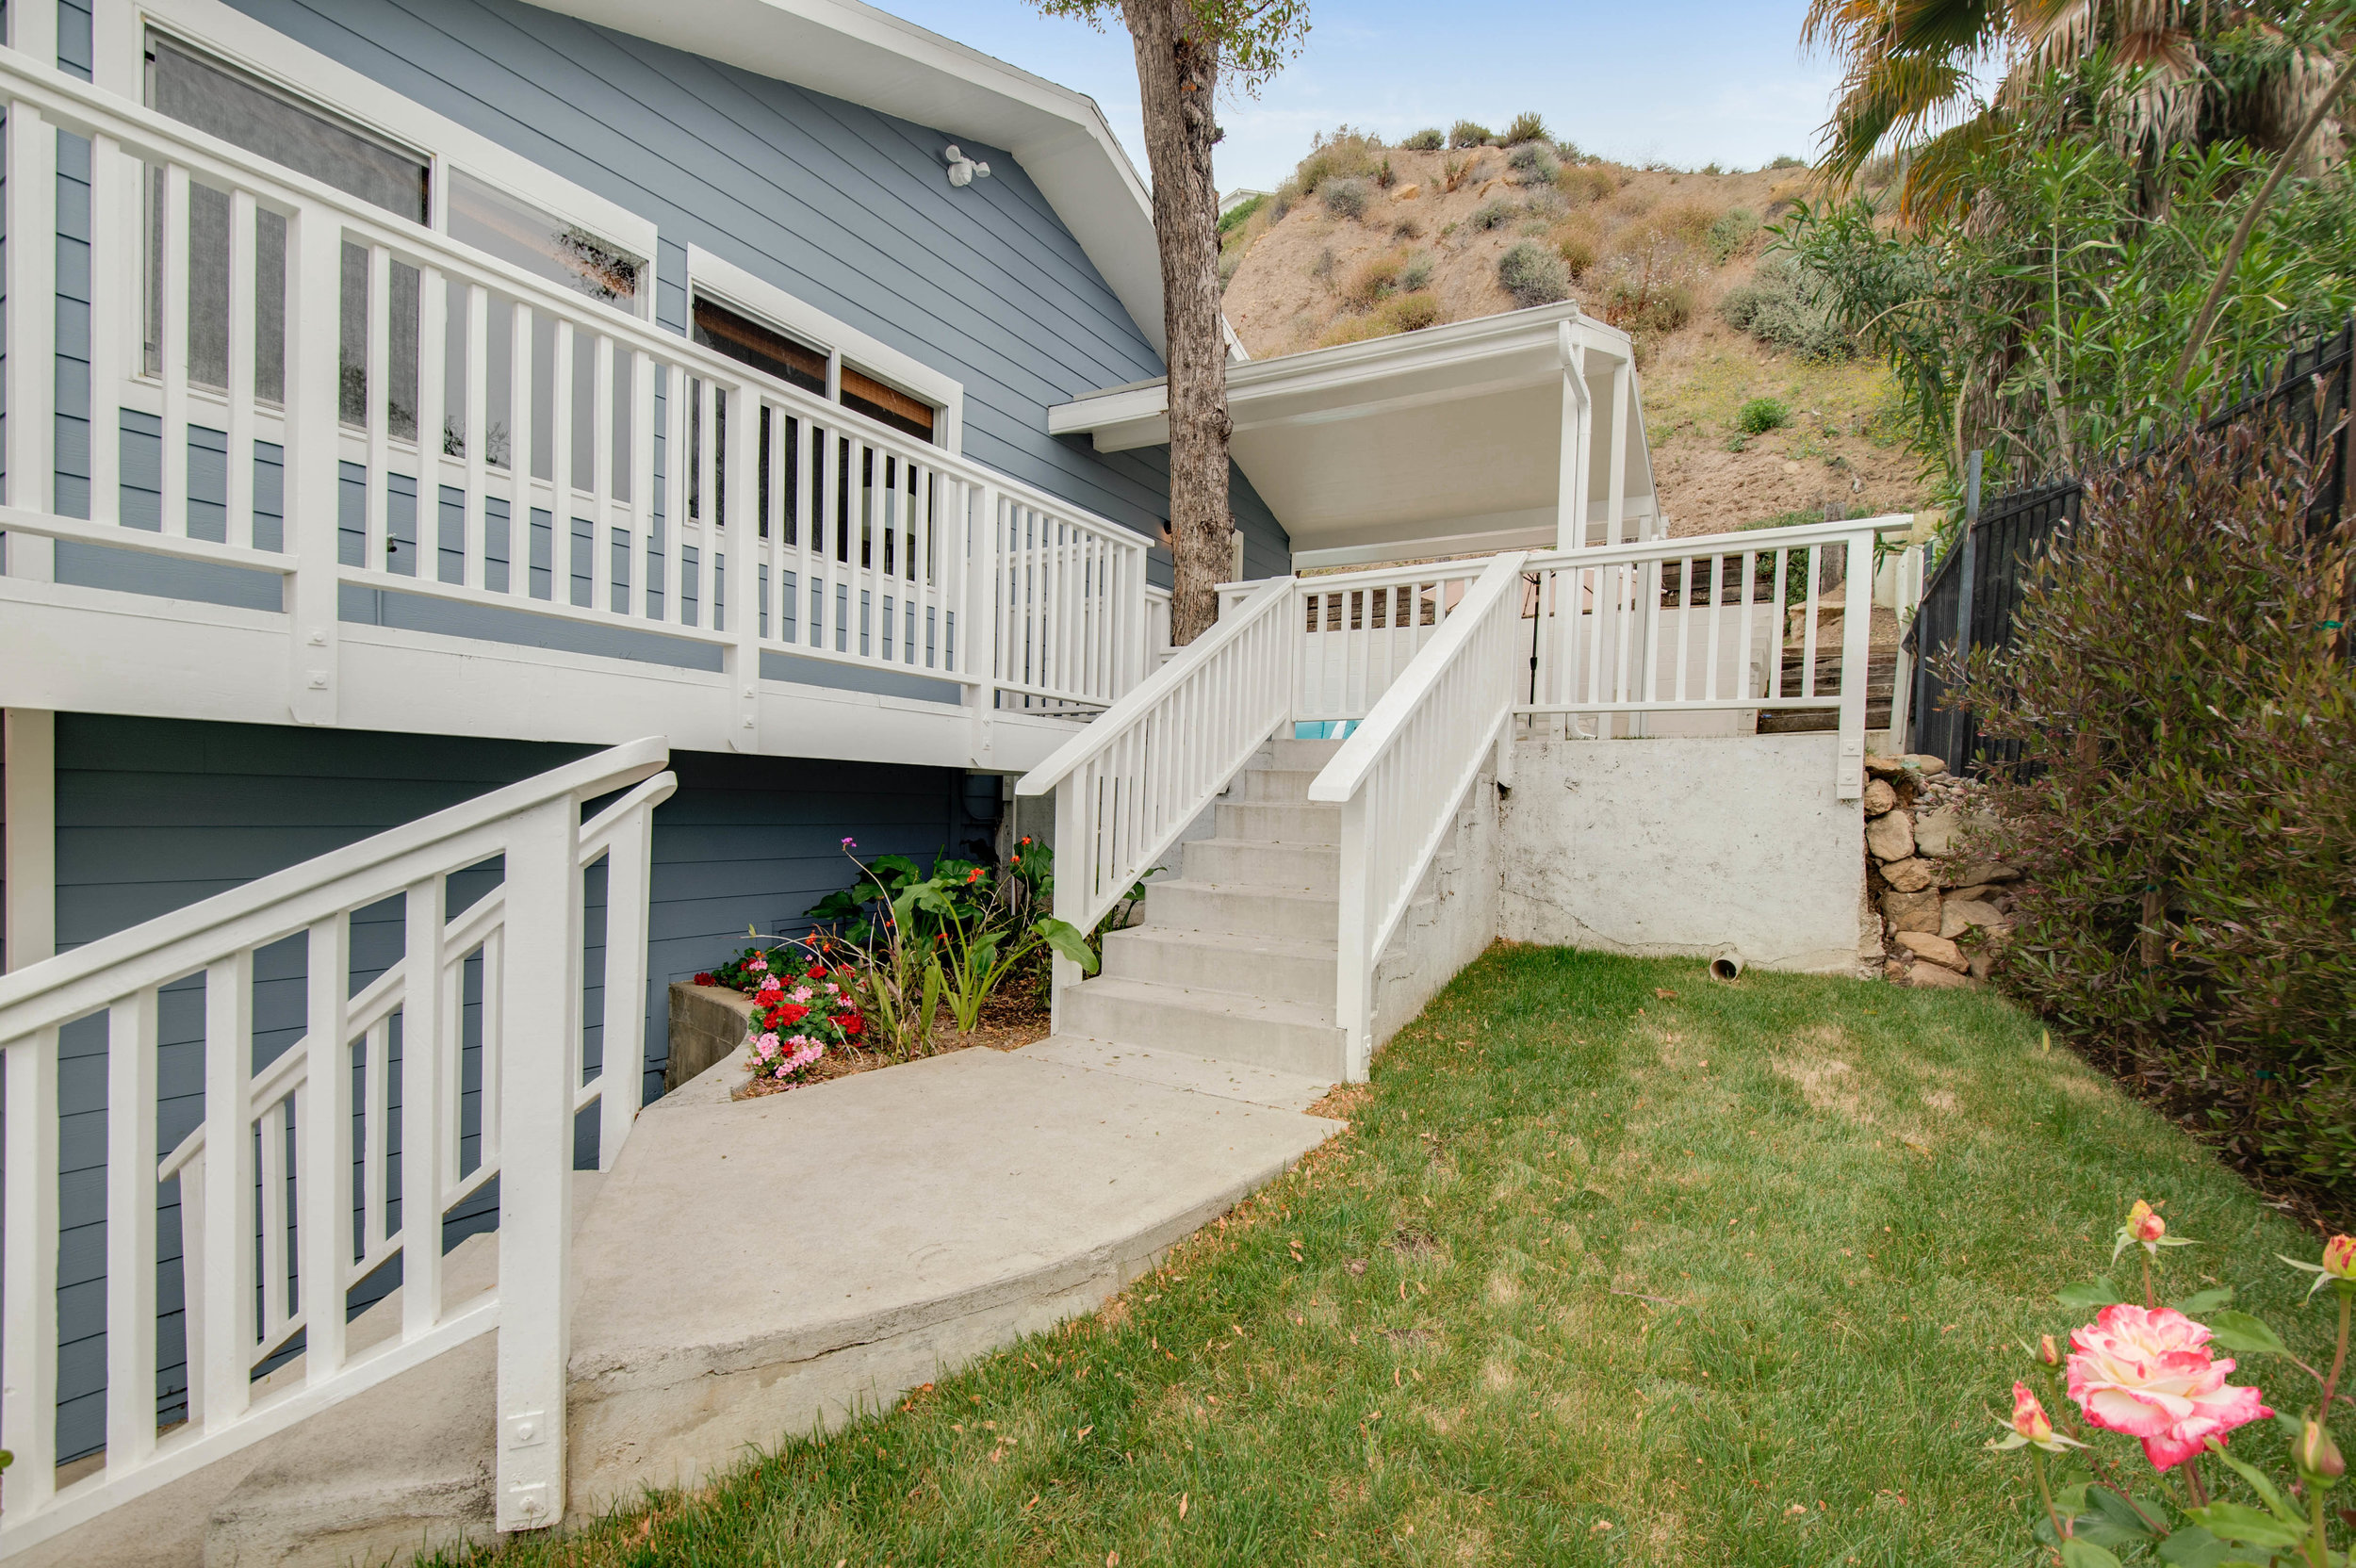 002 Front 3952 Las Flores For Sale Lease The Malibu Life Team Luxury Real Estate.jpg